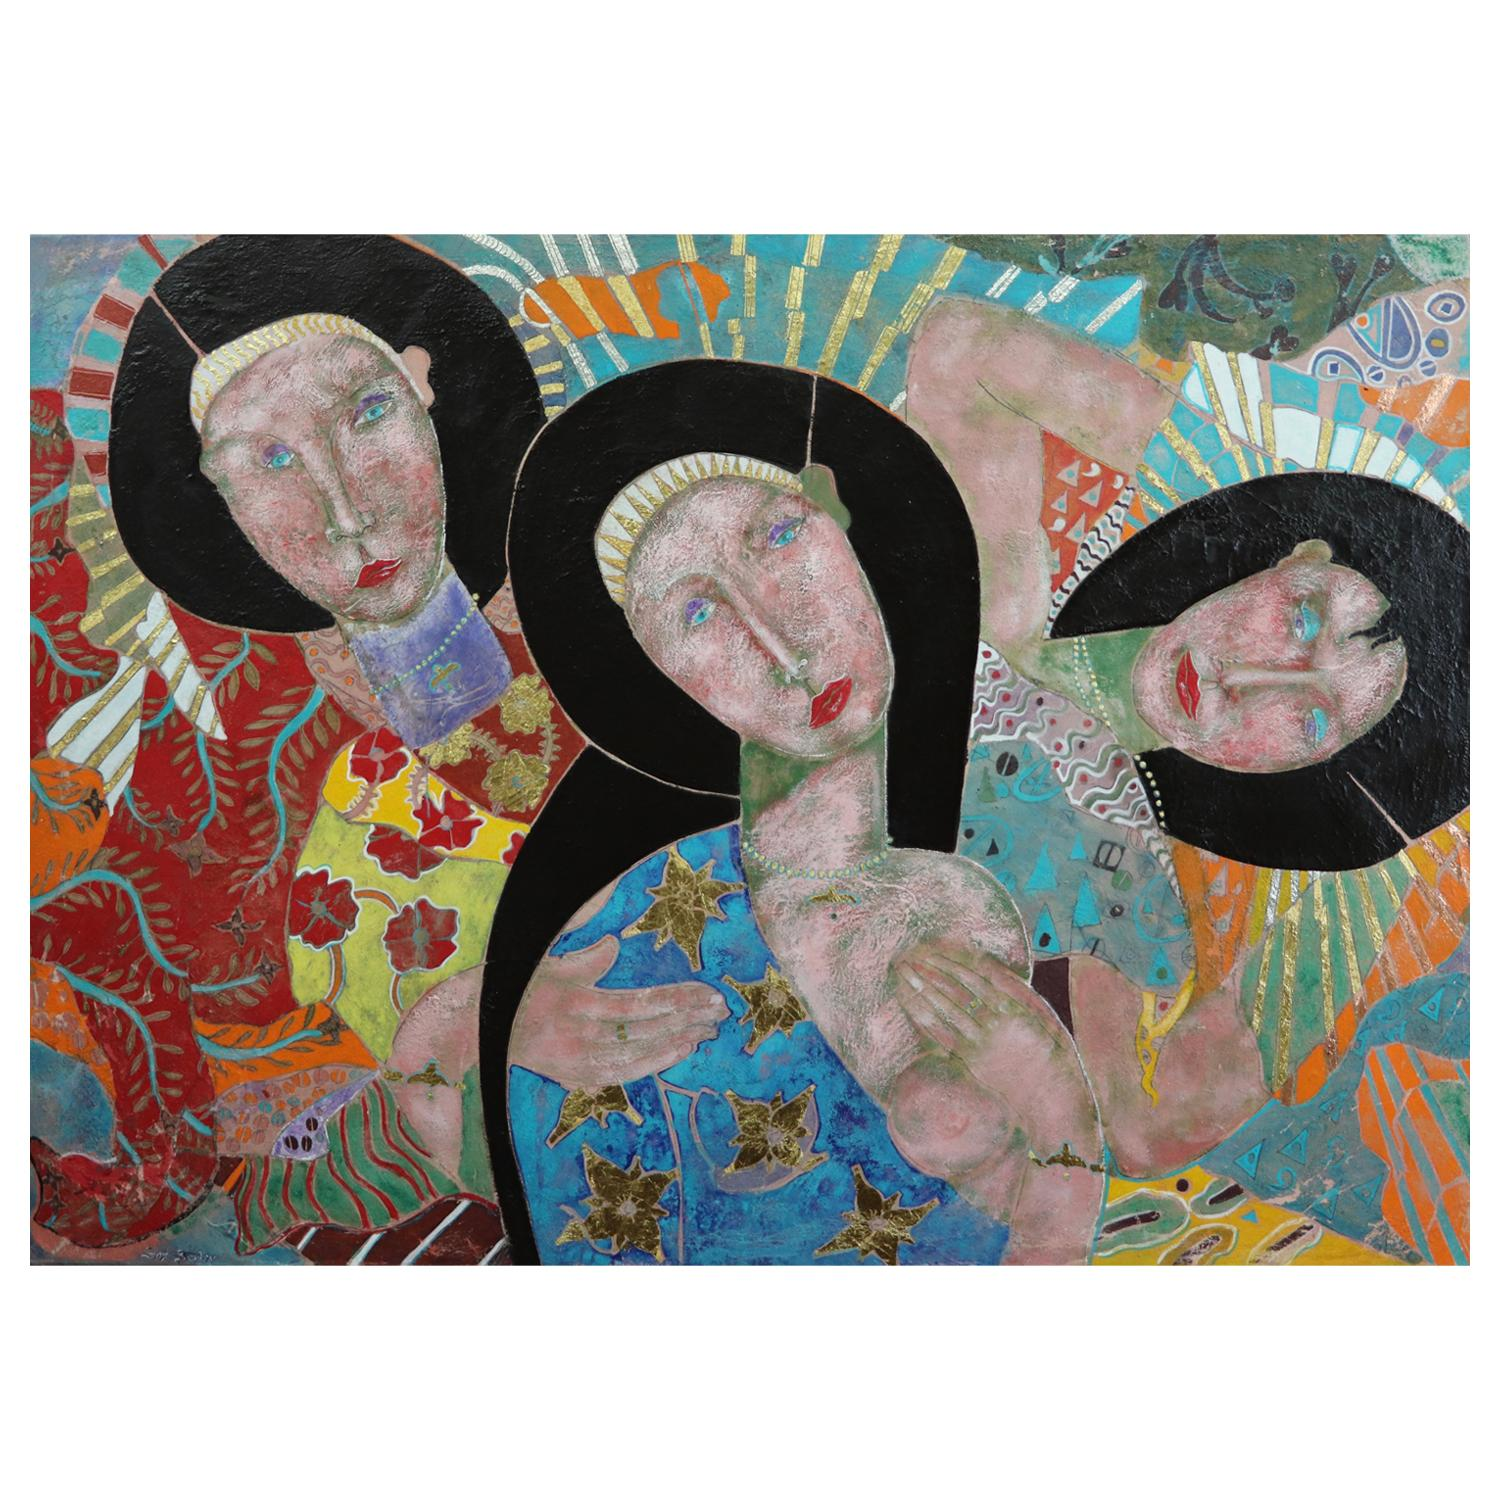 The Wisdom in Women, Contemporary Mixed-Media Painting